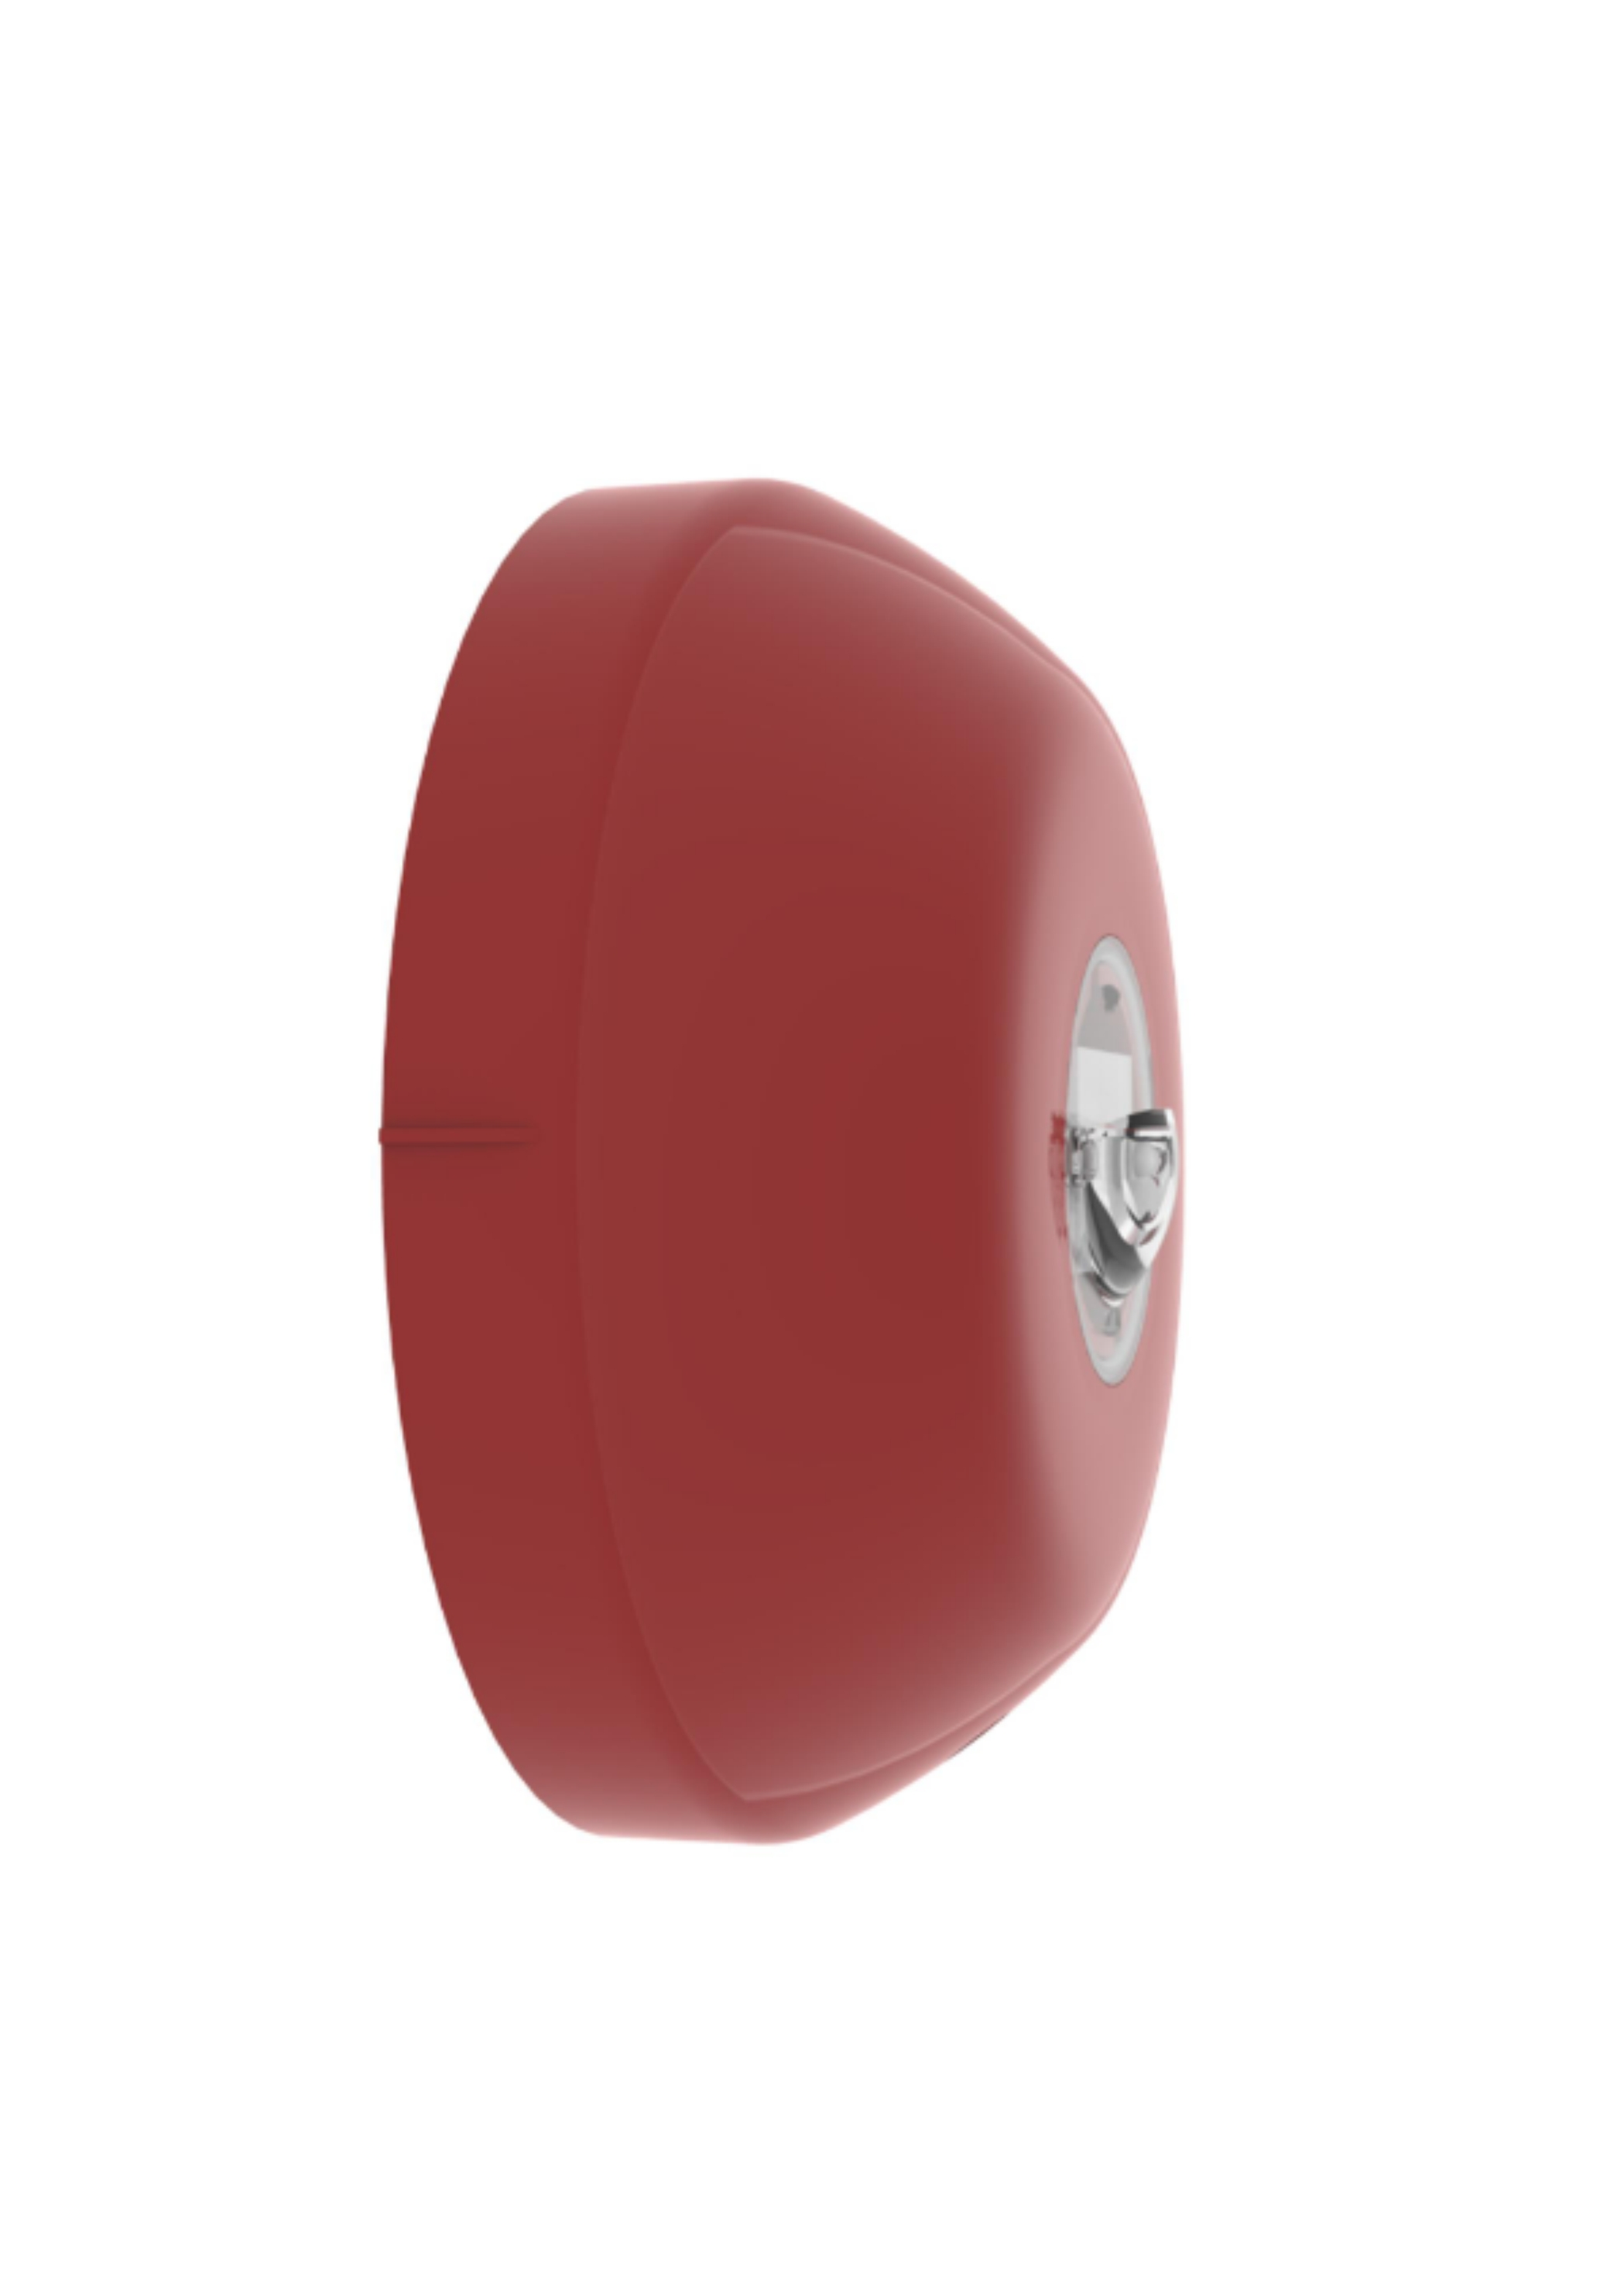 Wall Beacon, red case, white LEDs 1460320-00